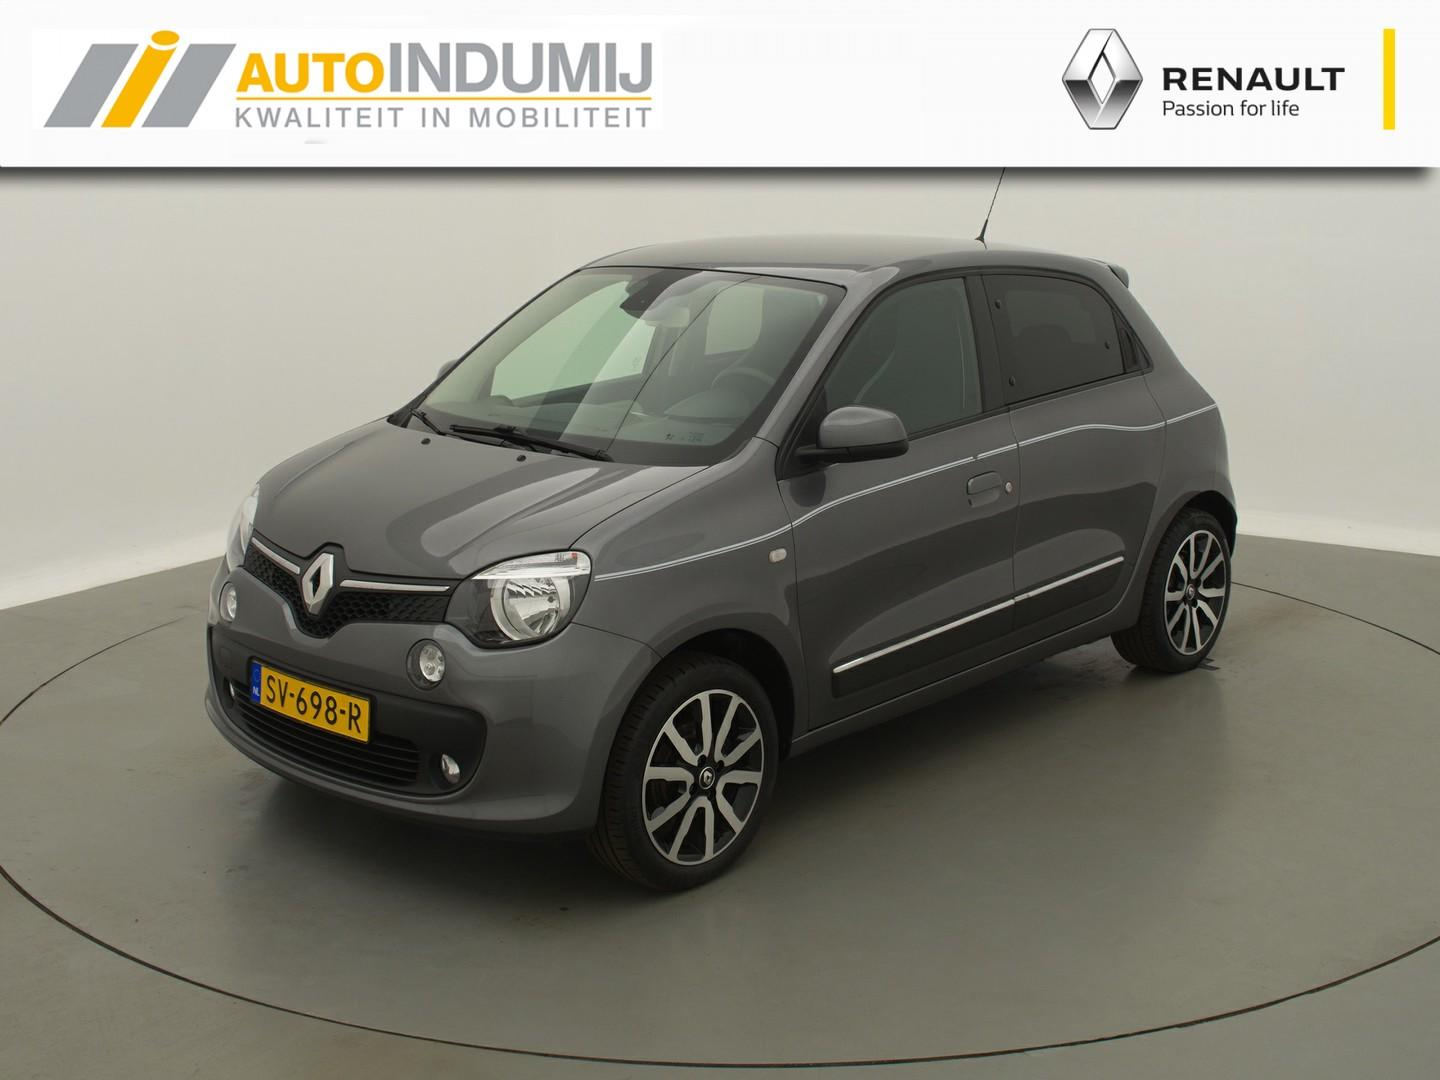 Renault Twingo Tce 90 intens / 90pk!!! / climate control / pdc